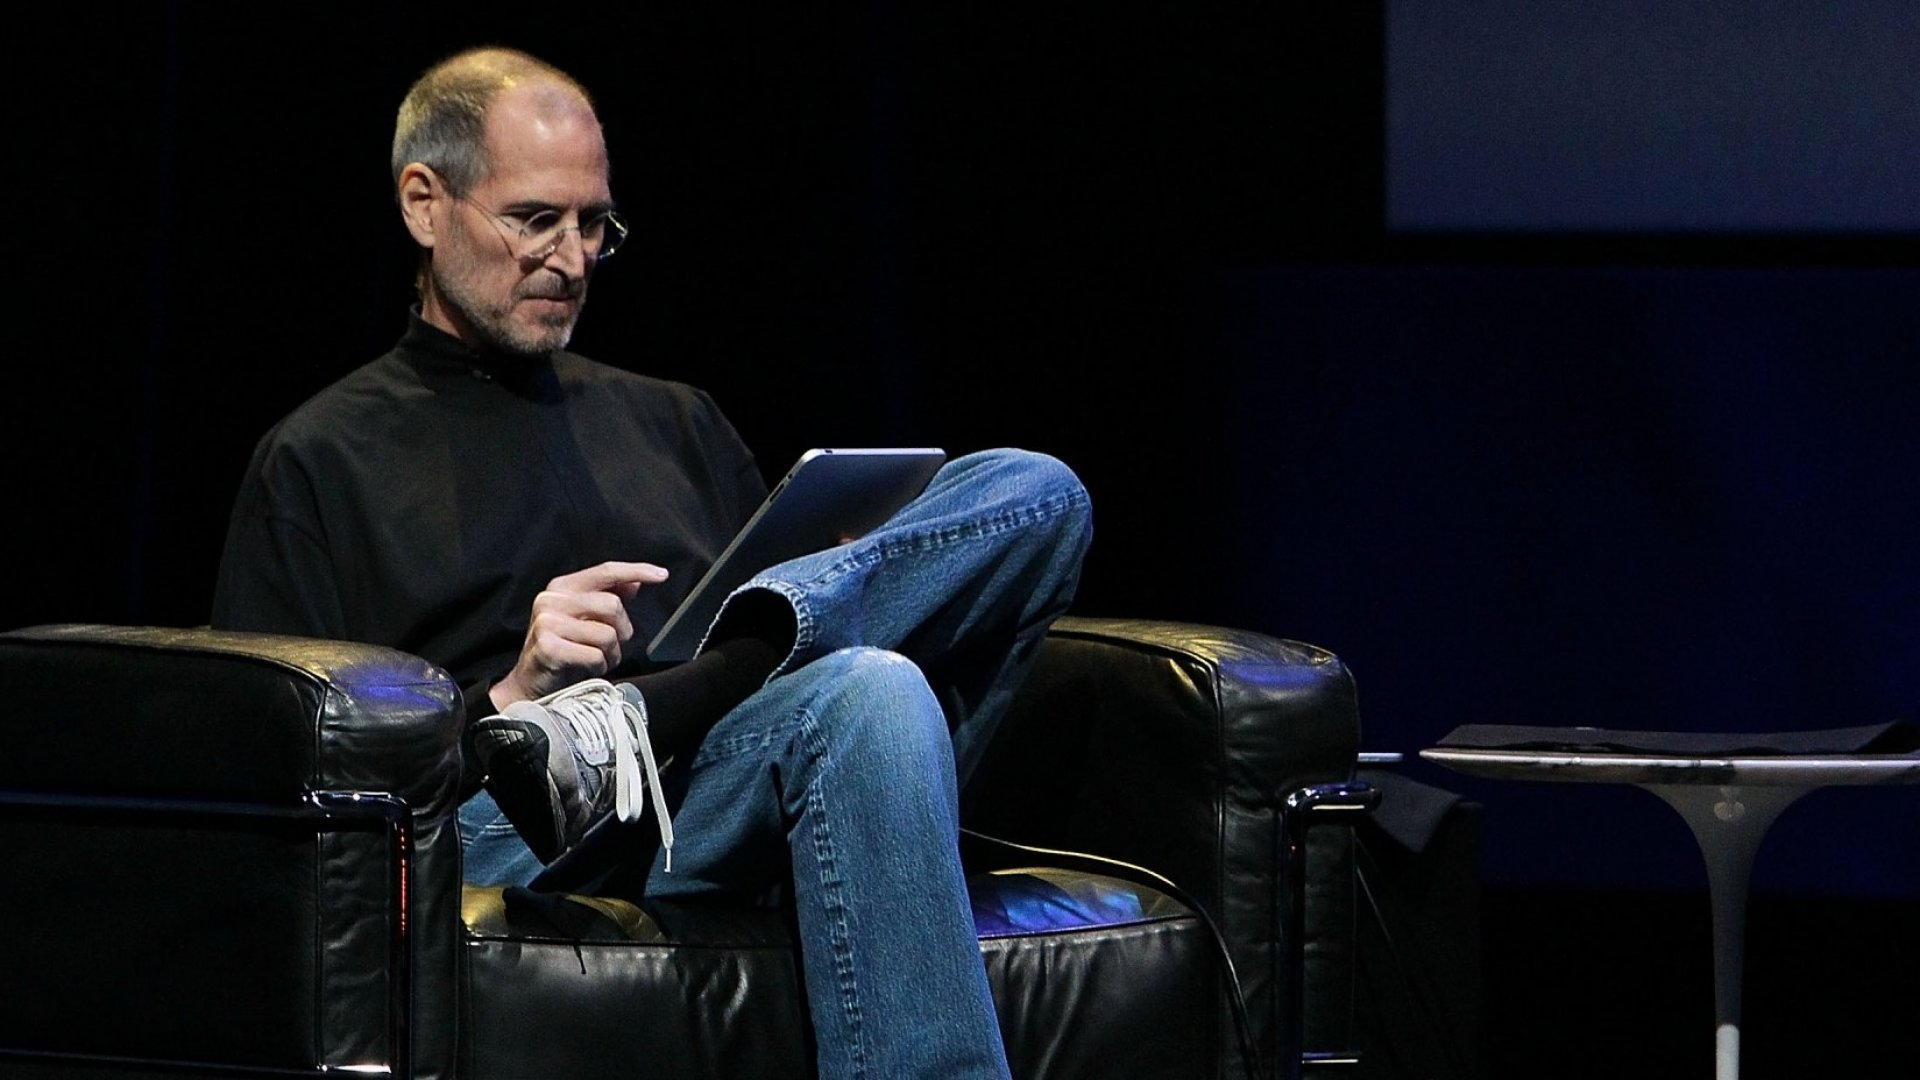 A Long-Time Apple Designer Reveals Steve Jobs's 6-Step Rehearsal Process He Used for Every Presentation